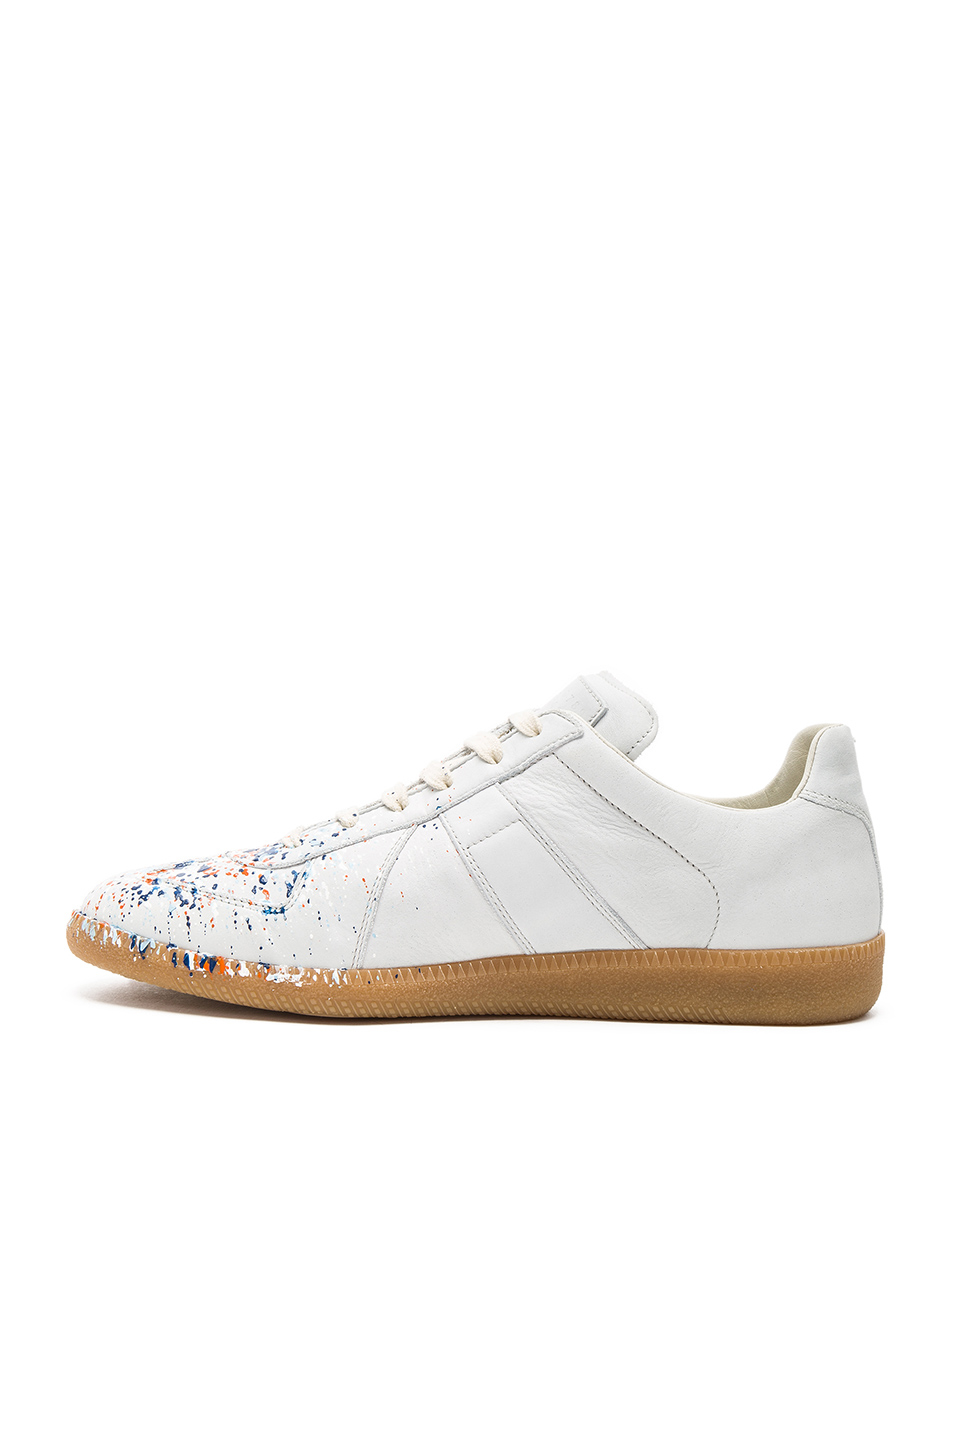 maison margiela replica paint splatter leather low top sneakers in white lyst. Black Bedroom Furniture Sets. Home Design Ideas